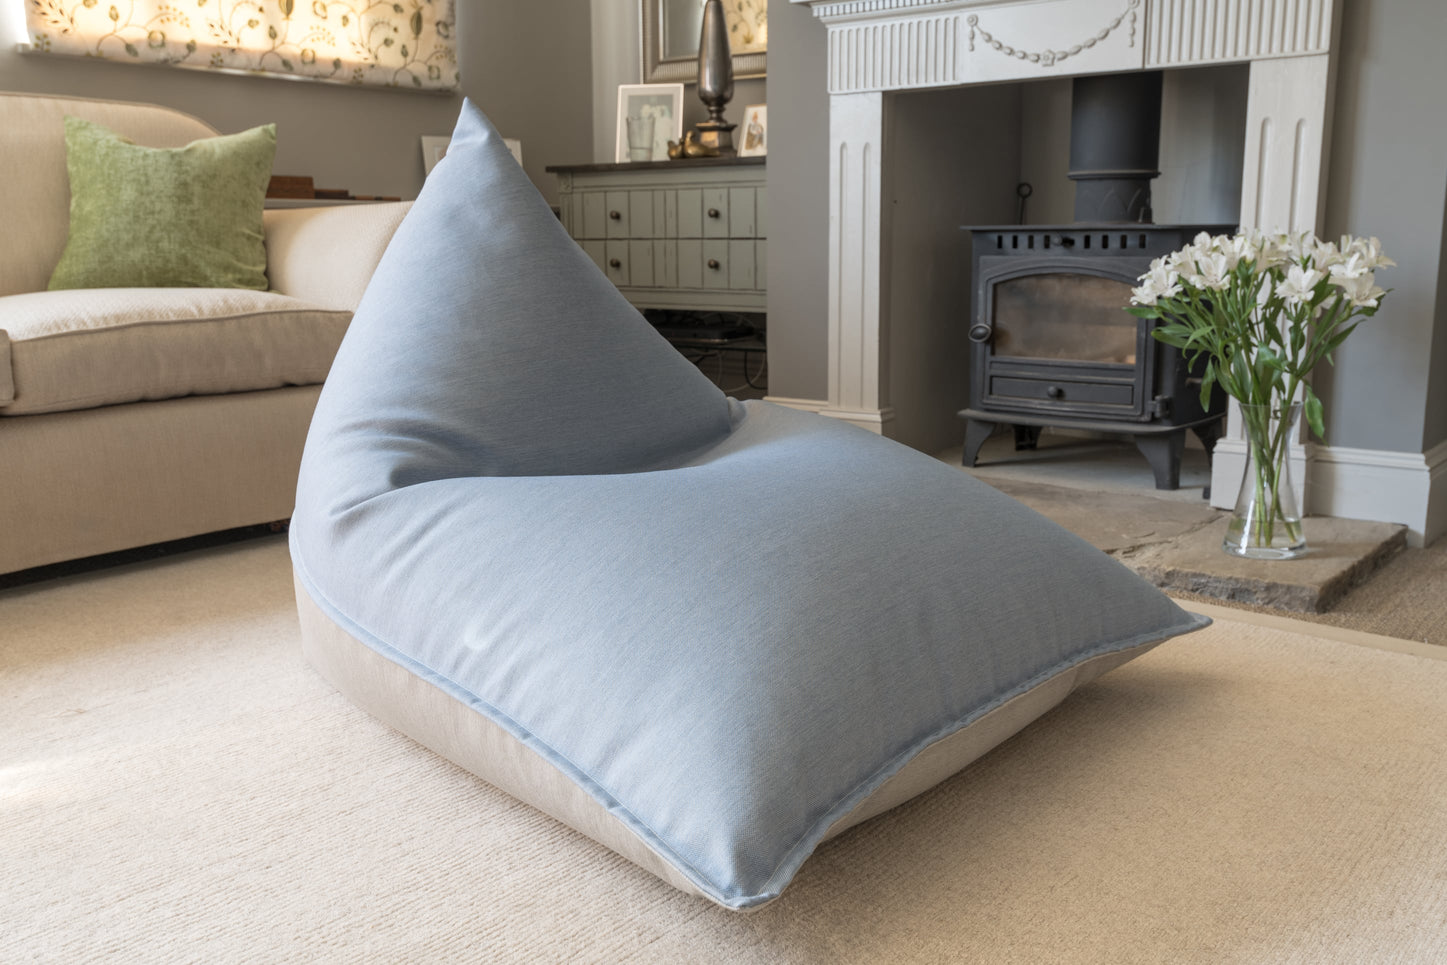 Armadillo Sun bean bag lounger in cool blue and grey fabric inside by fireplace